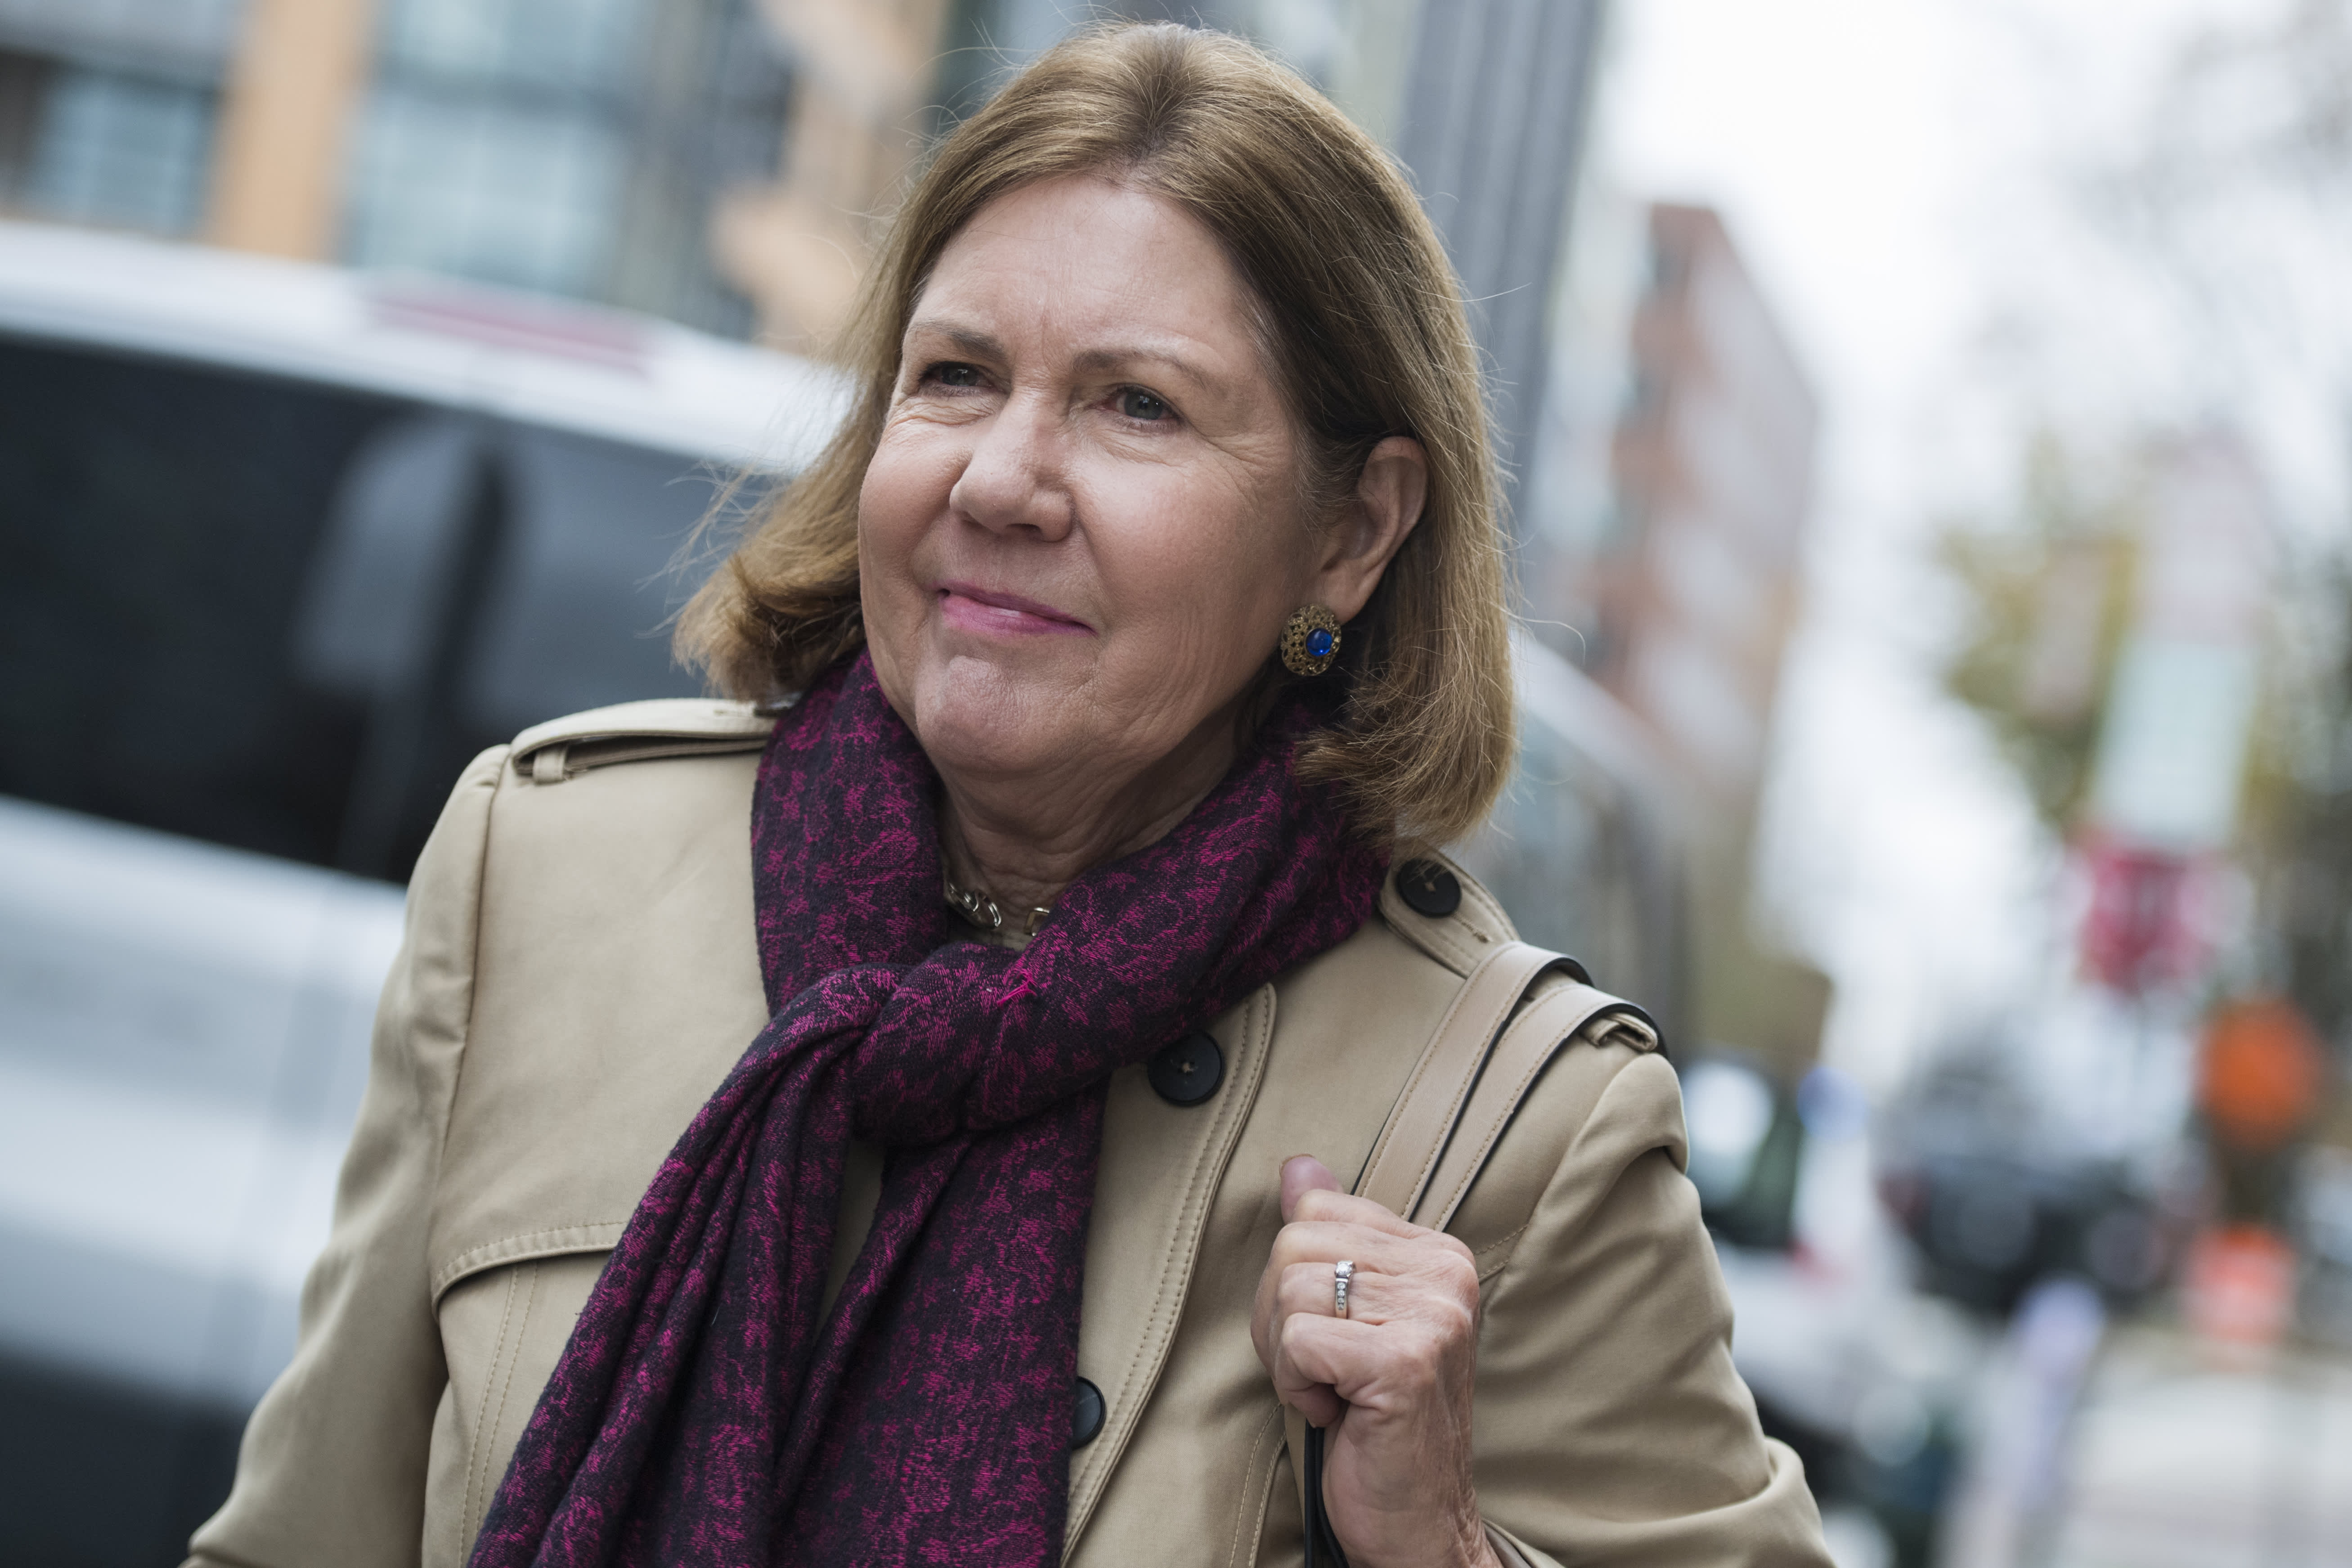 Democratic Rep. Ann Kirkpatrick is taking time off to treat alcoholism